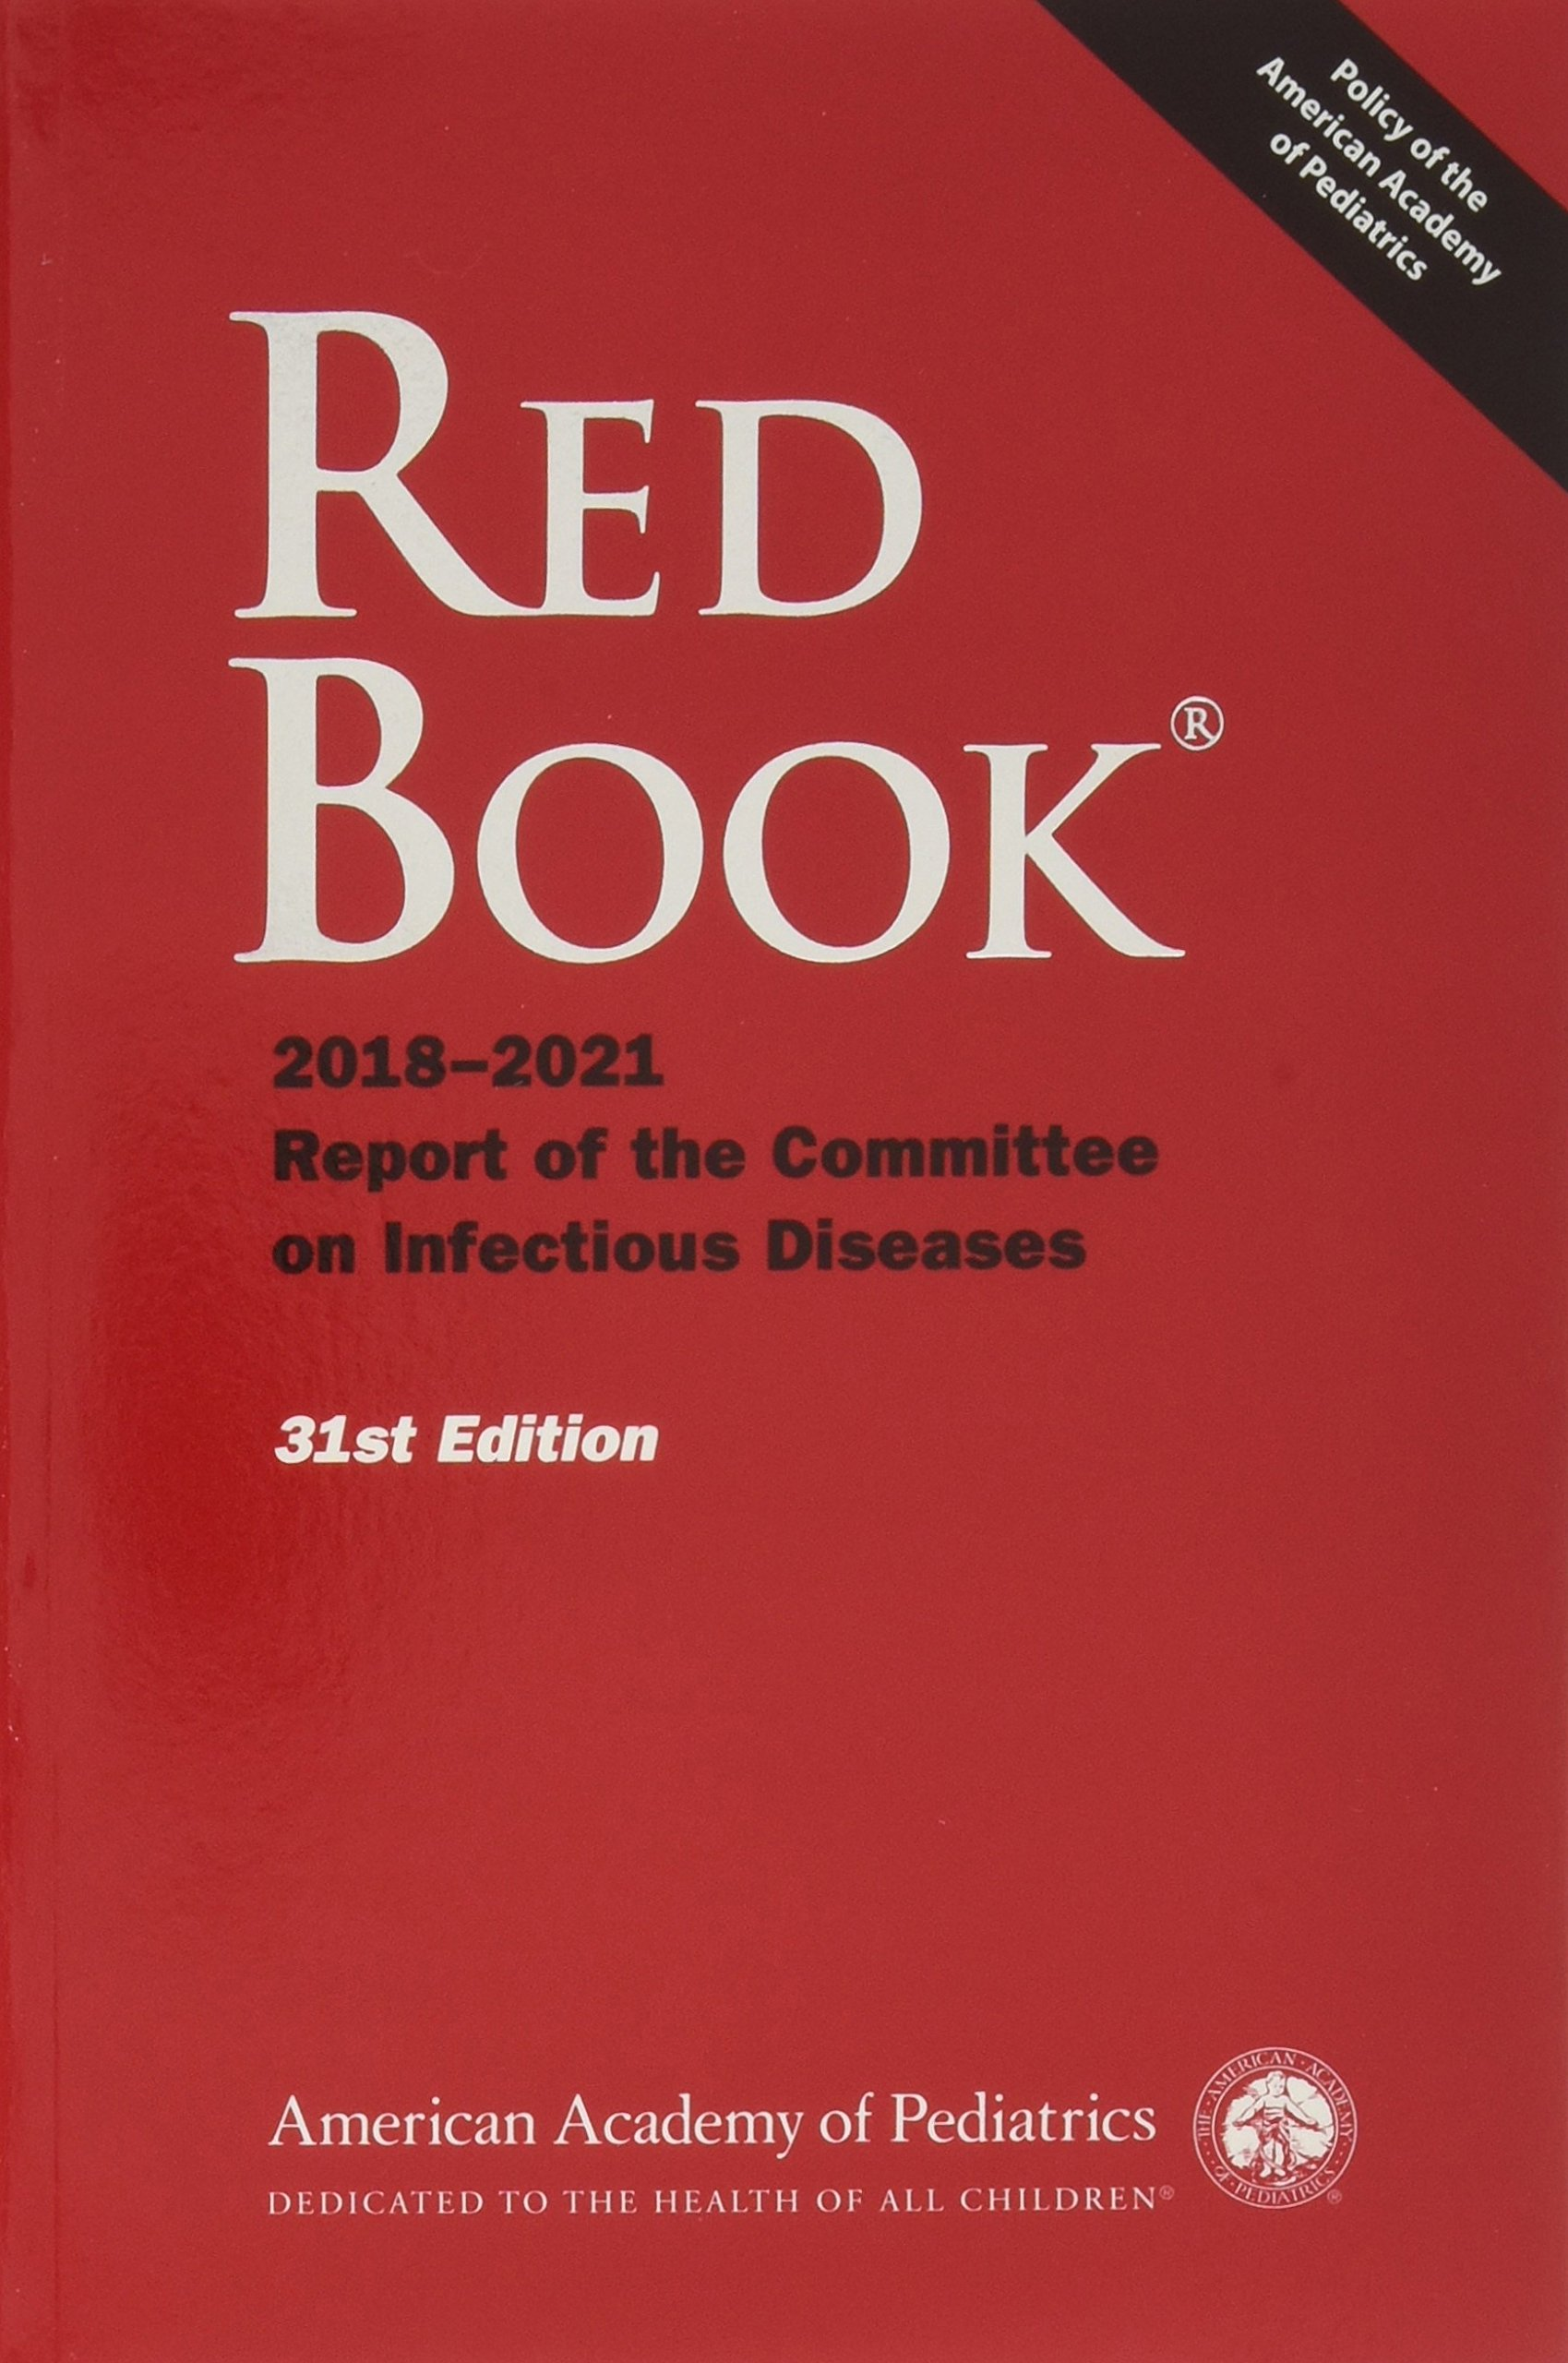 Red book report of the committee of infectious diseases persuasive essay of music